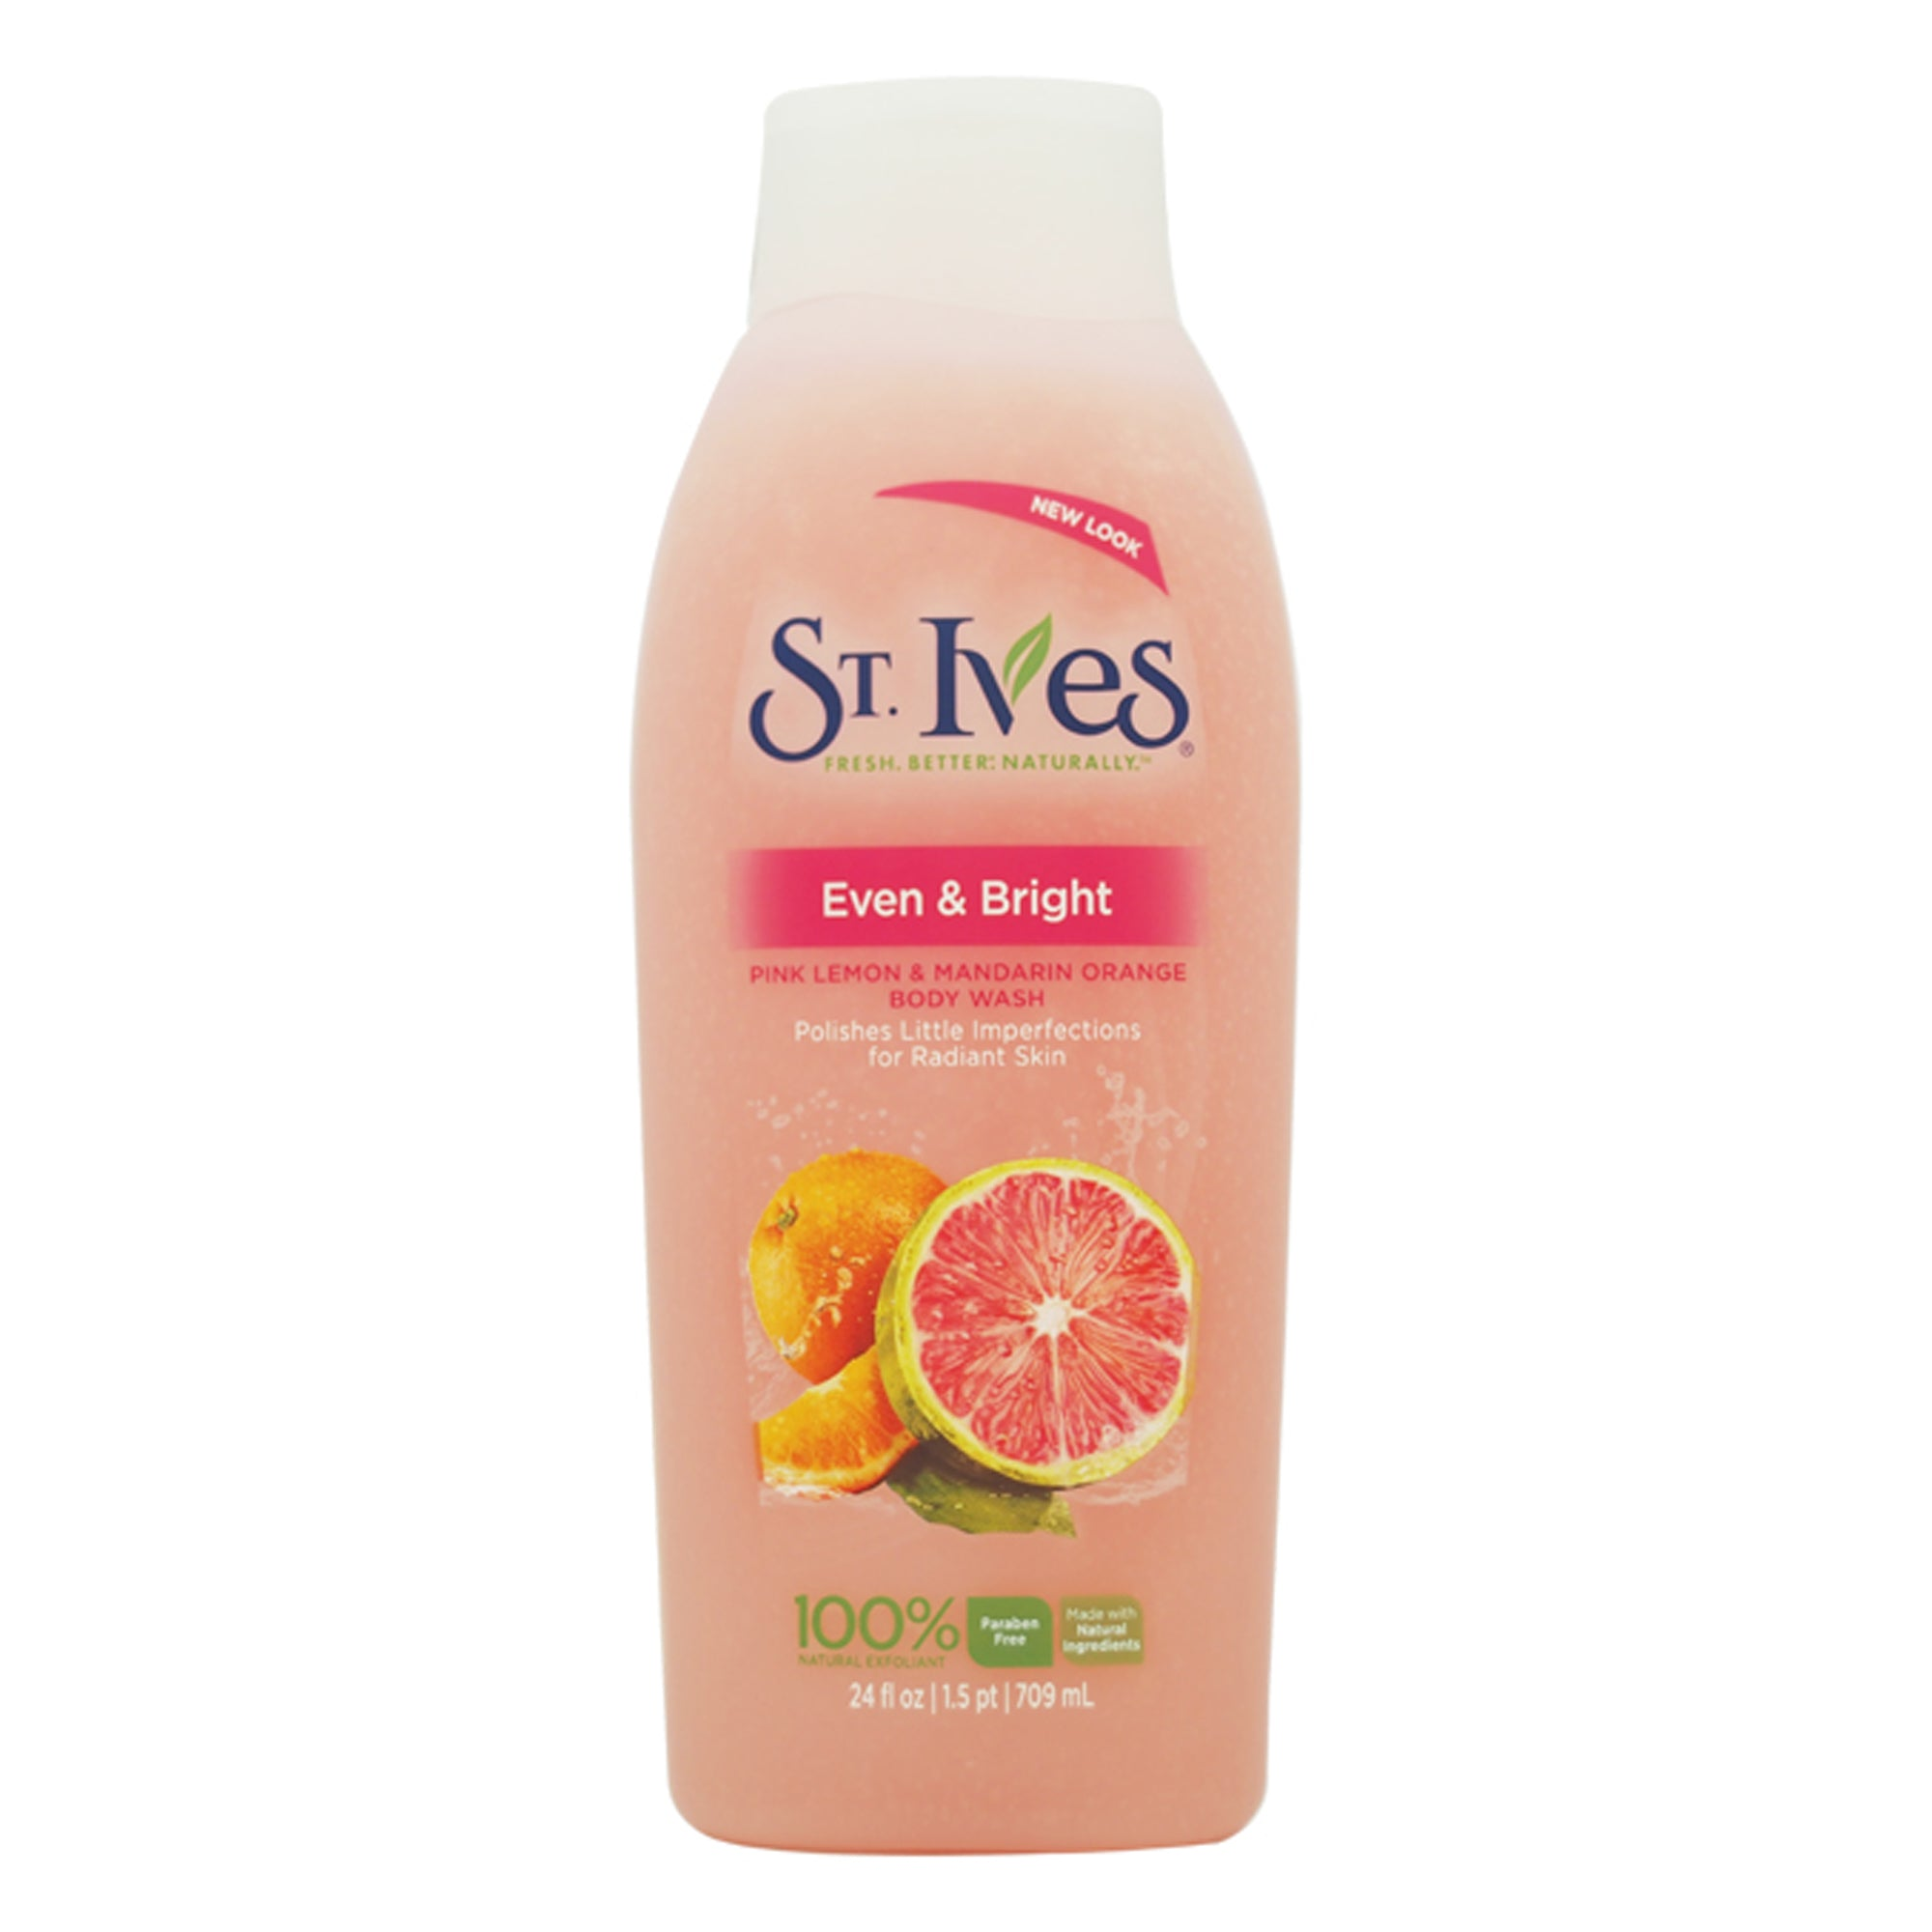 St. Ives Even & Bright Pink Lemon & Mandarin Orange Body Wash